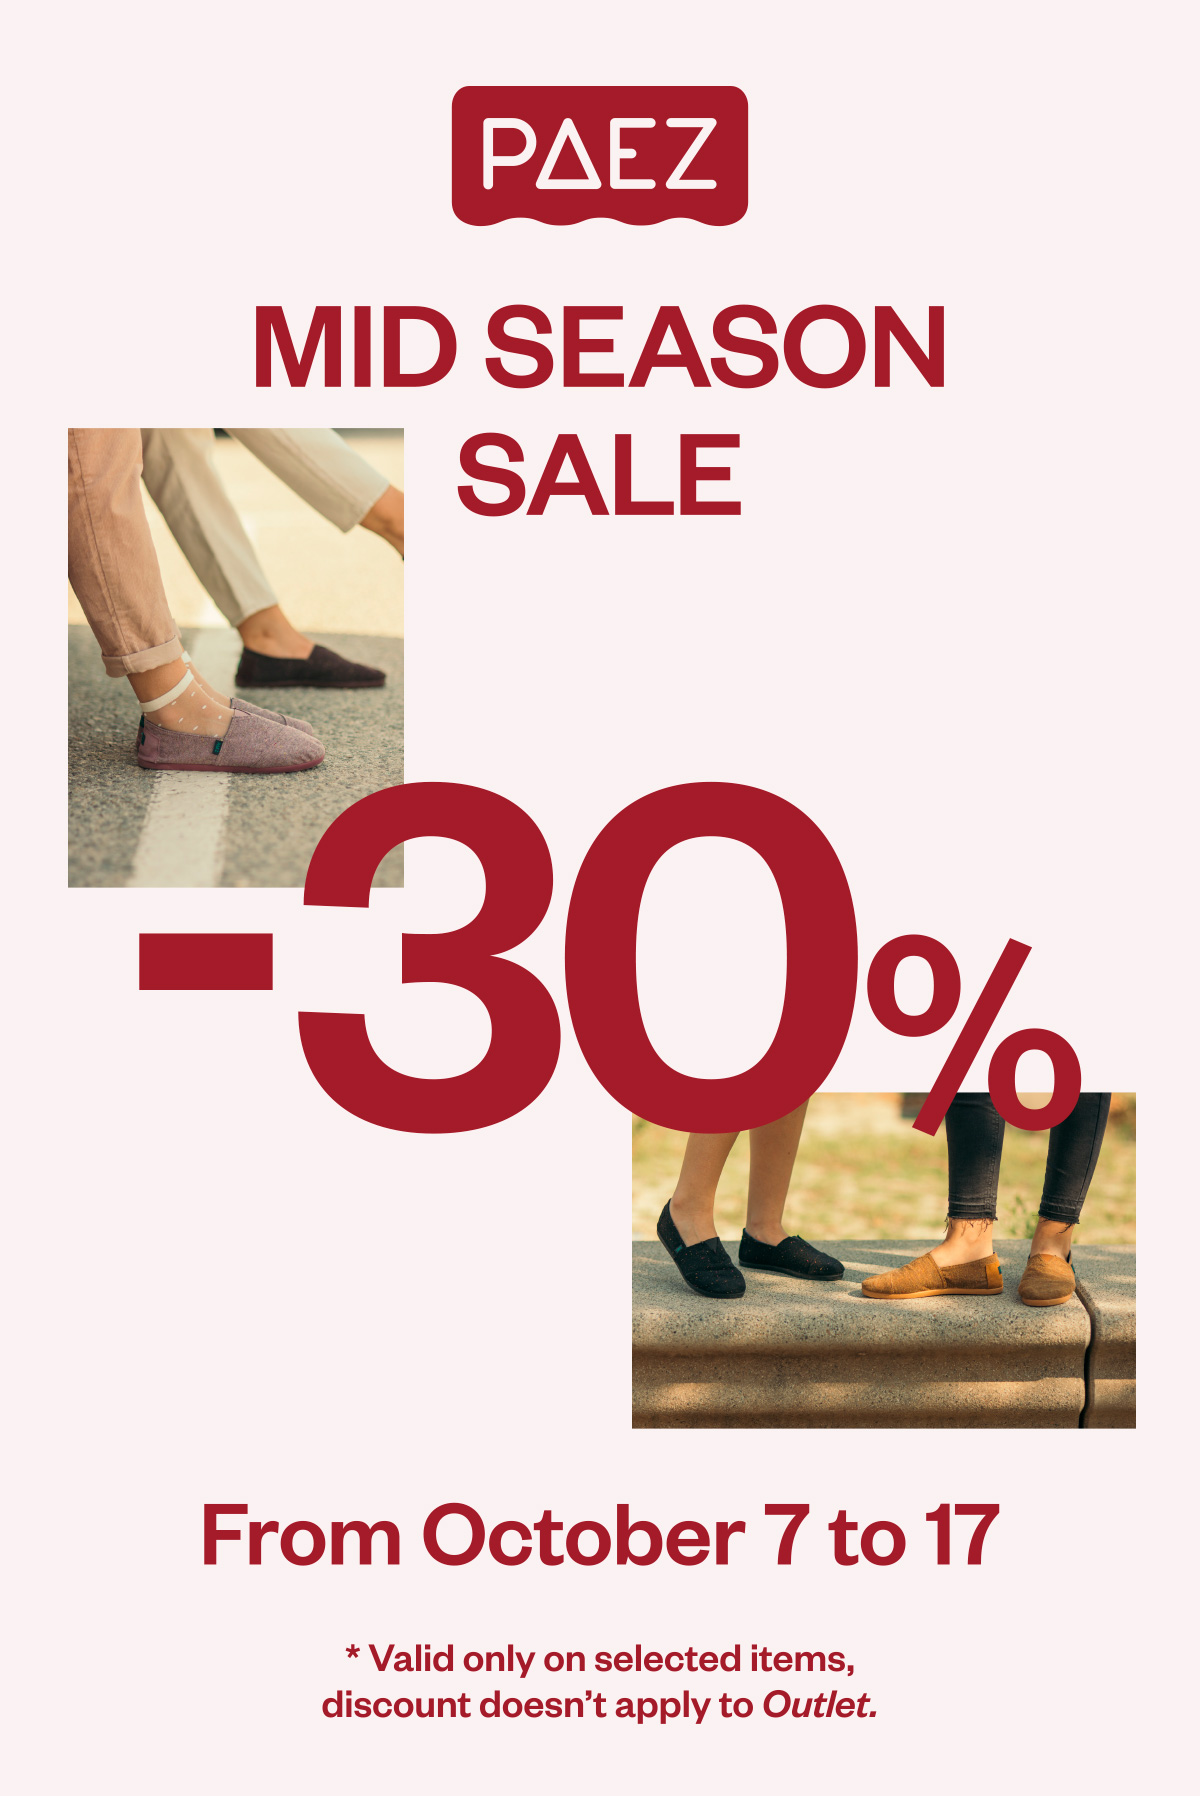 70c634f56a Paez ES  MID SEASON SALES -30% OFF